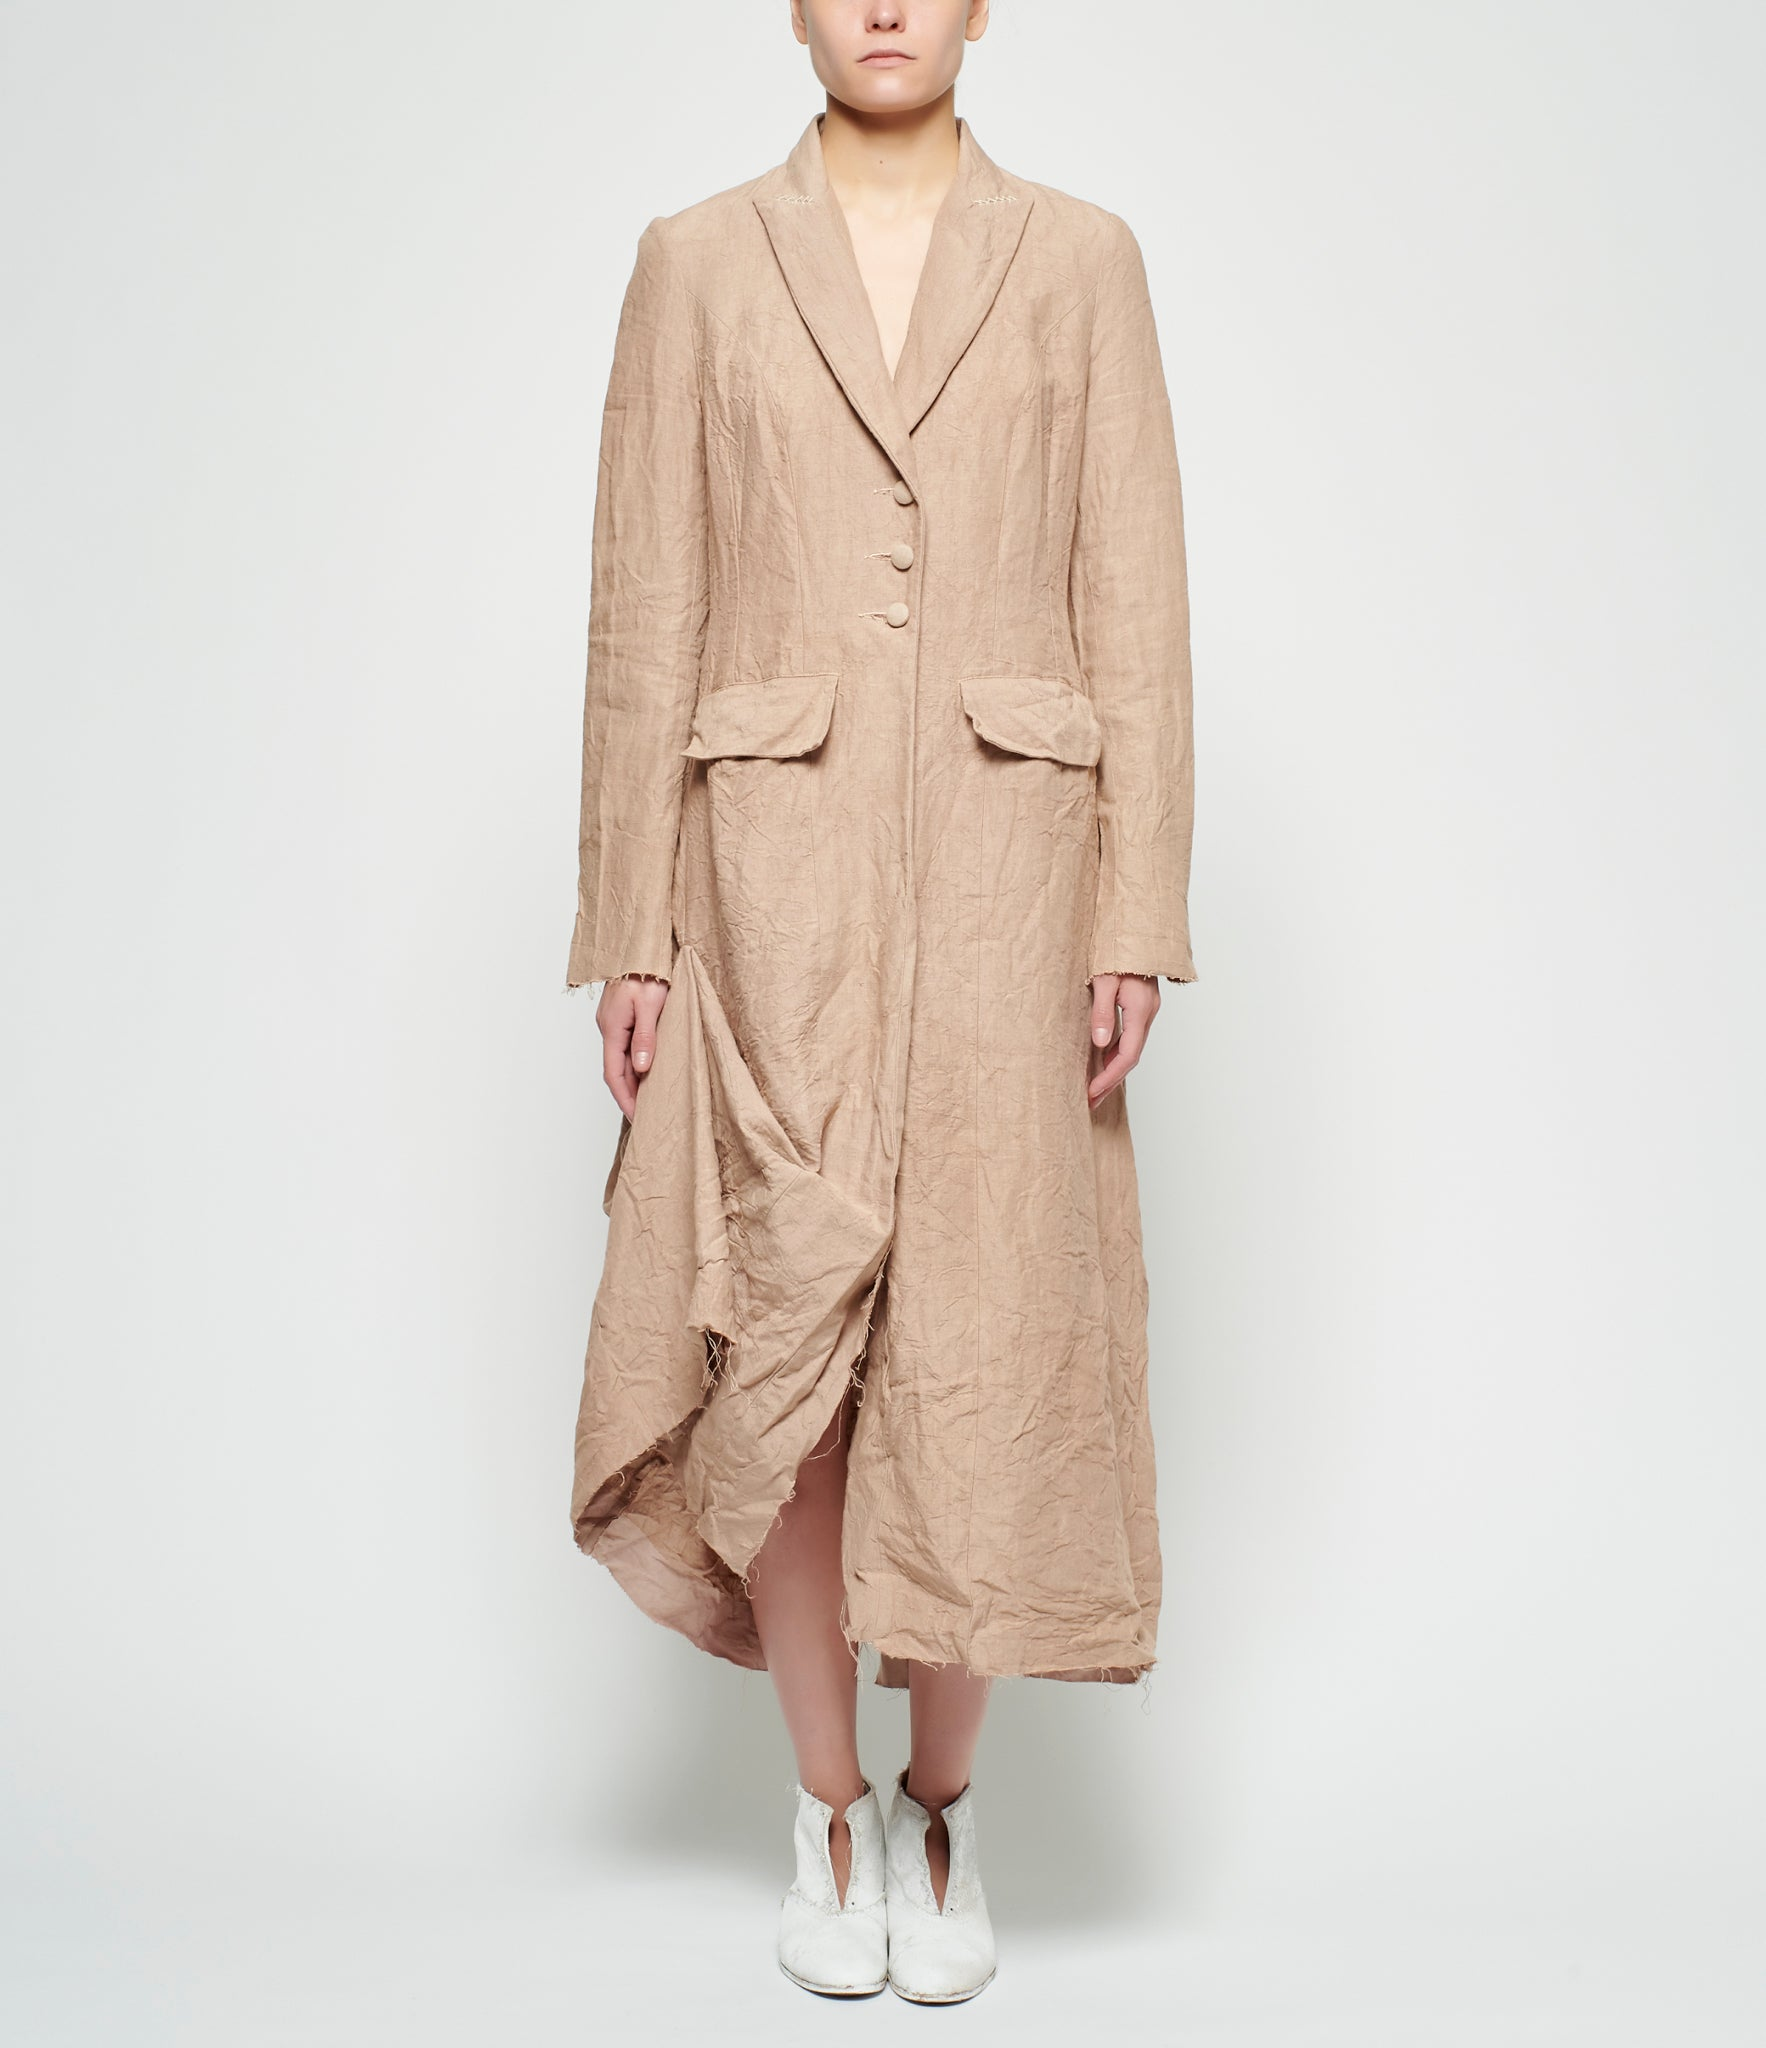 Elena Dawson Tobacco Linen Unlined Coat